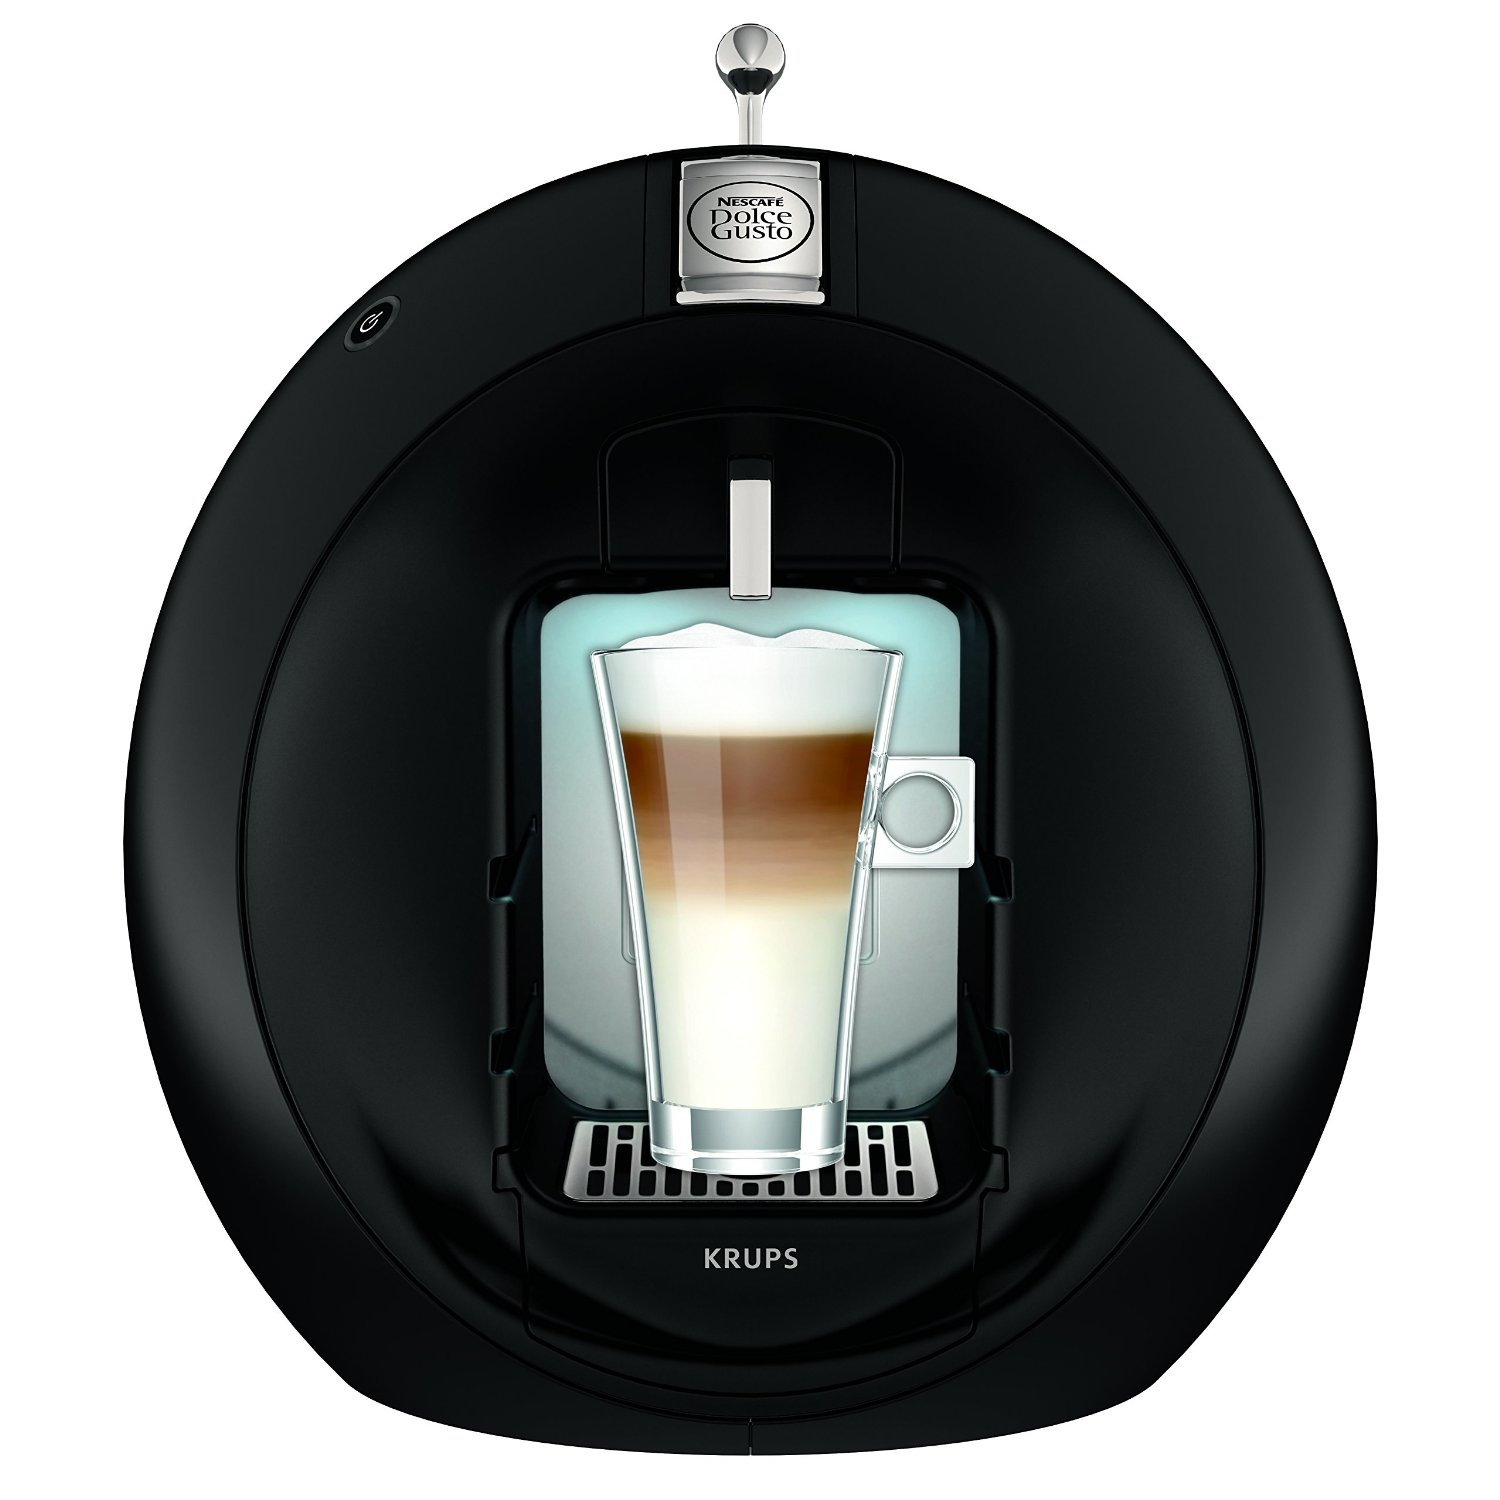 dolce gusto maschine test erfahrungsberichte preisempfehlungen. Black Bedroom Furniture Sets. Home Design Ideas